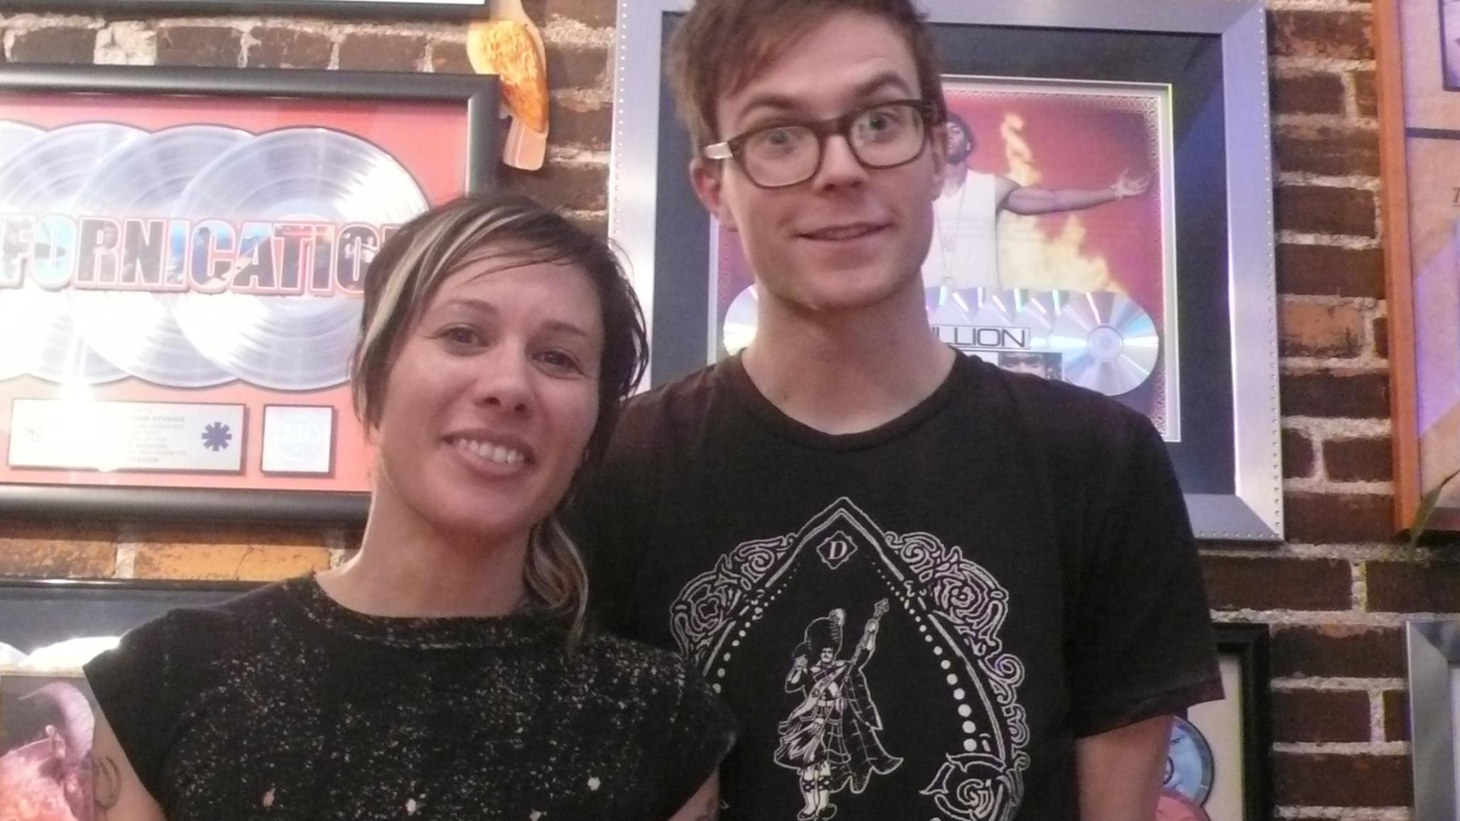 Dynamic duo Matt and Kim do their thing on Morning Becomes Eclectic at 11:15am.